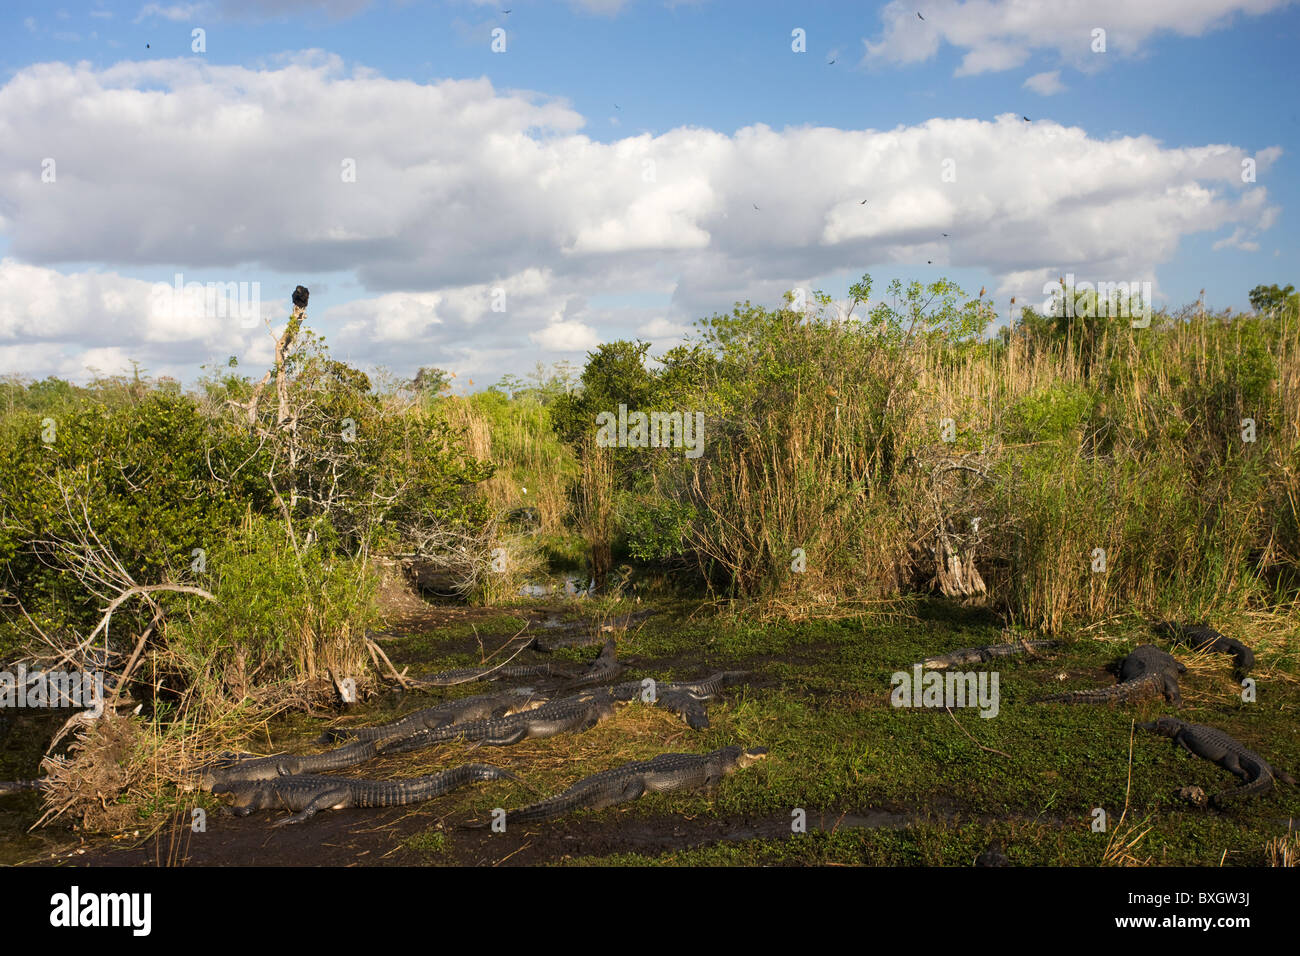 Large group of Alligators in typical Everglades scene, Florida, USA - Stock Image